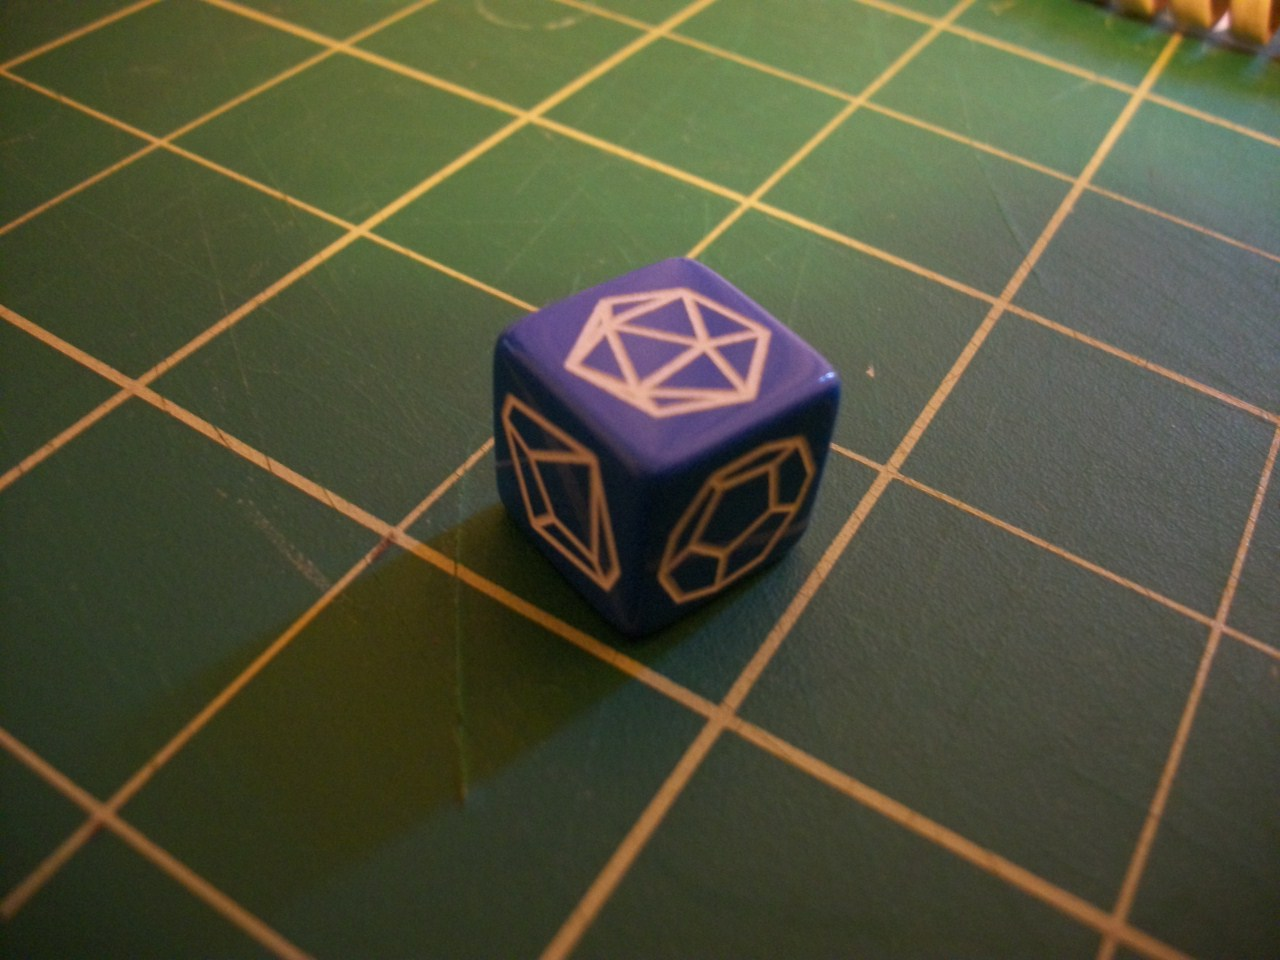 Dice so nerdy, they make other dice seem not nerdy